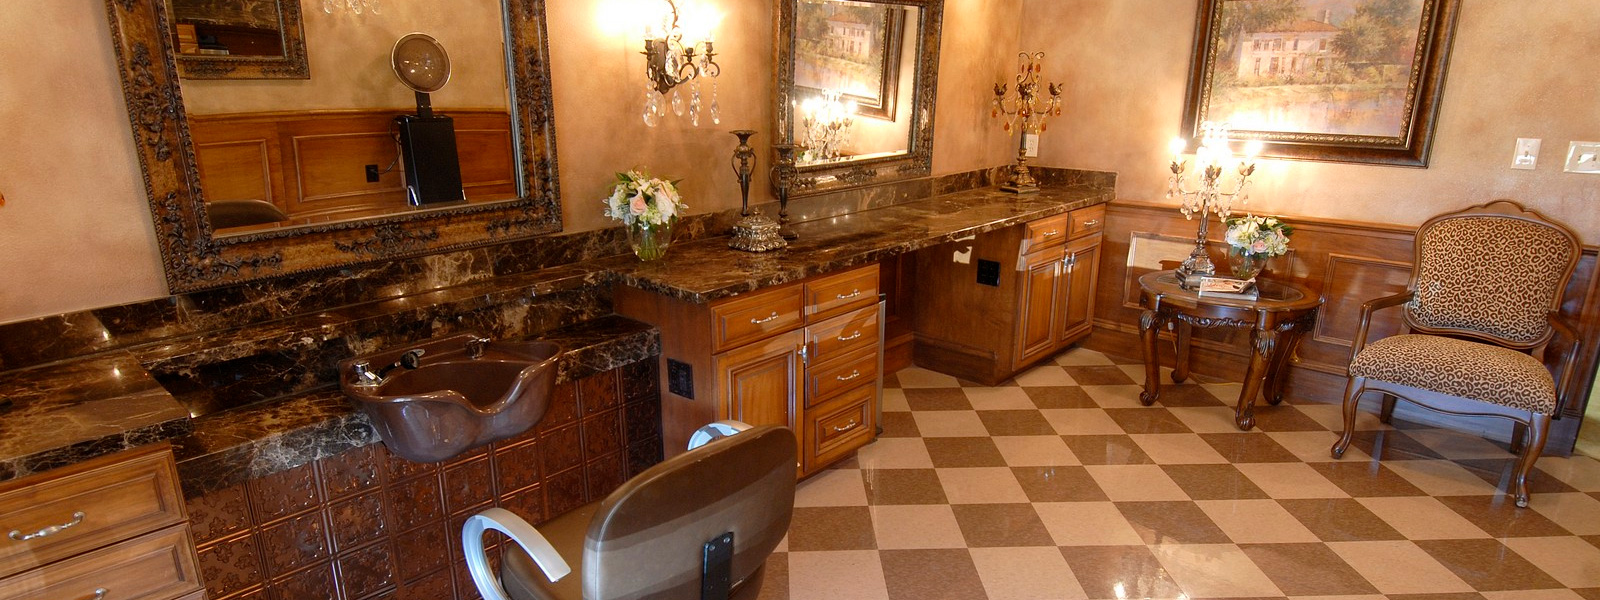 Beautiful granite countertops in the salon